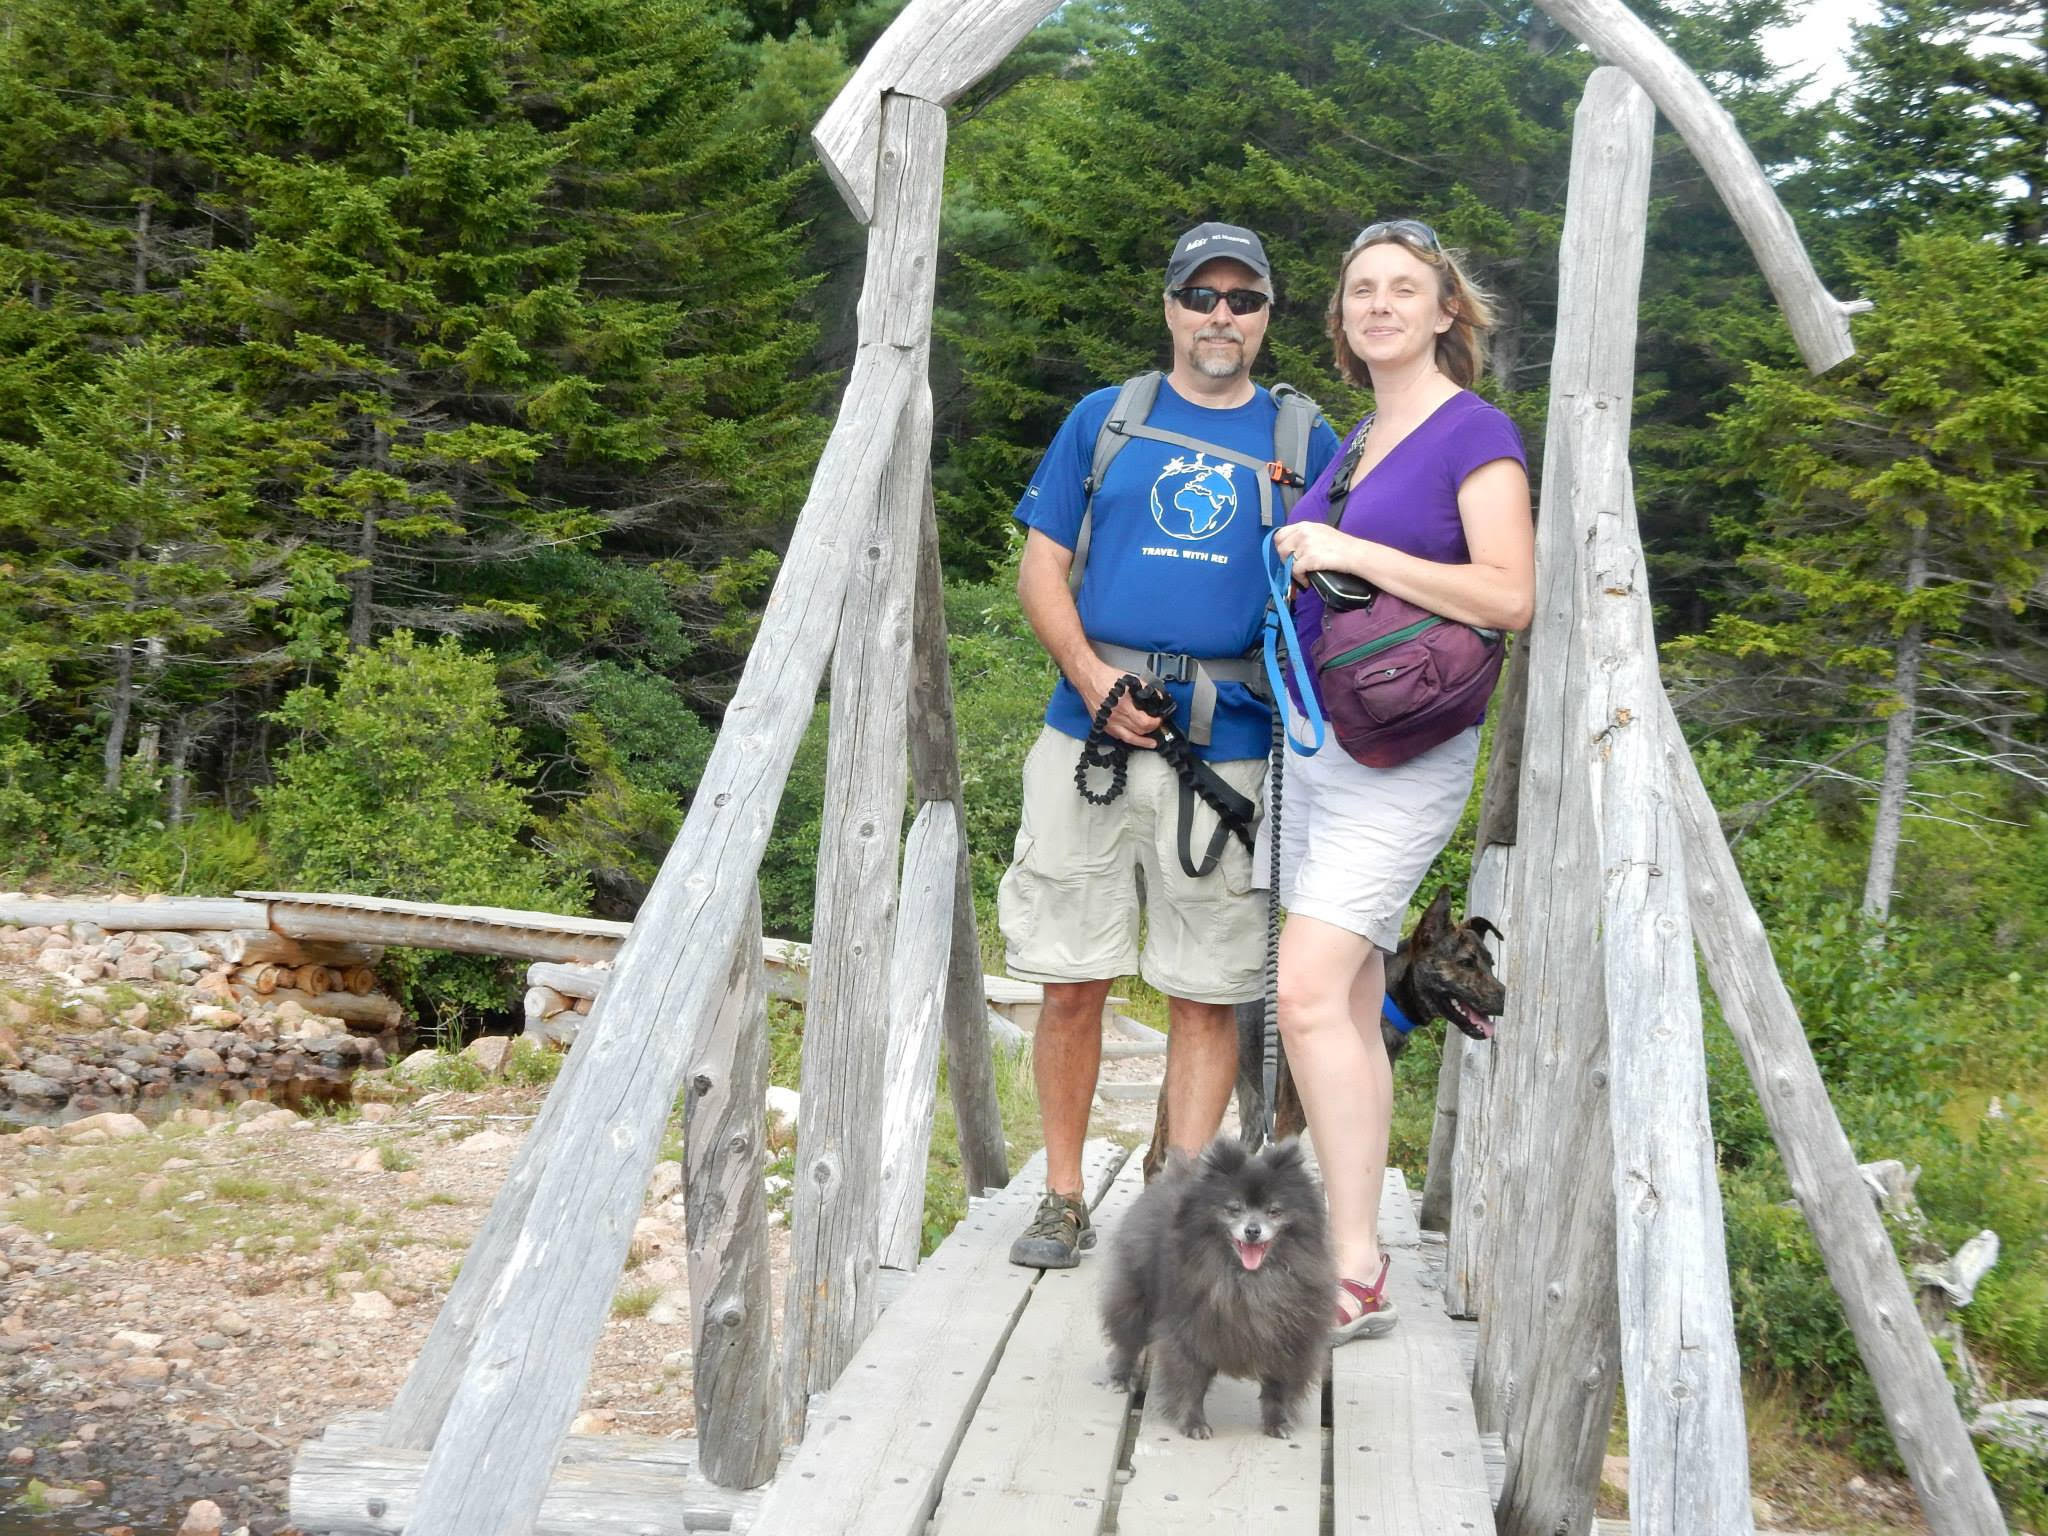 Guest blogger Vesna Plakanis, her husband Erik, and friends posing in the spot they love best the outdoors.